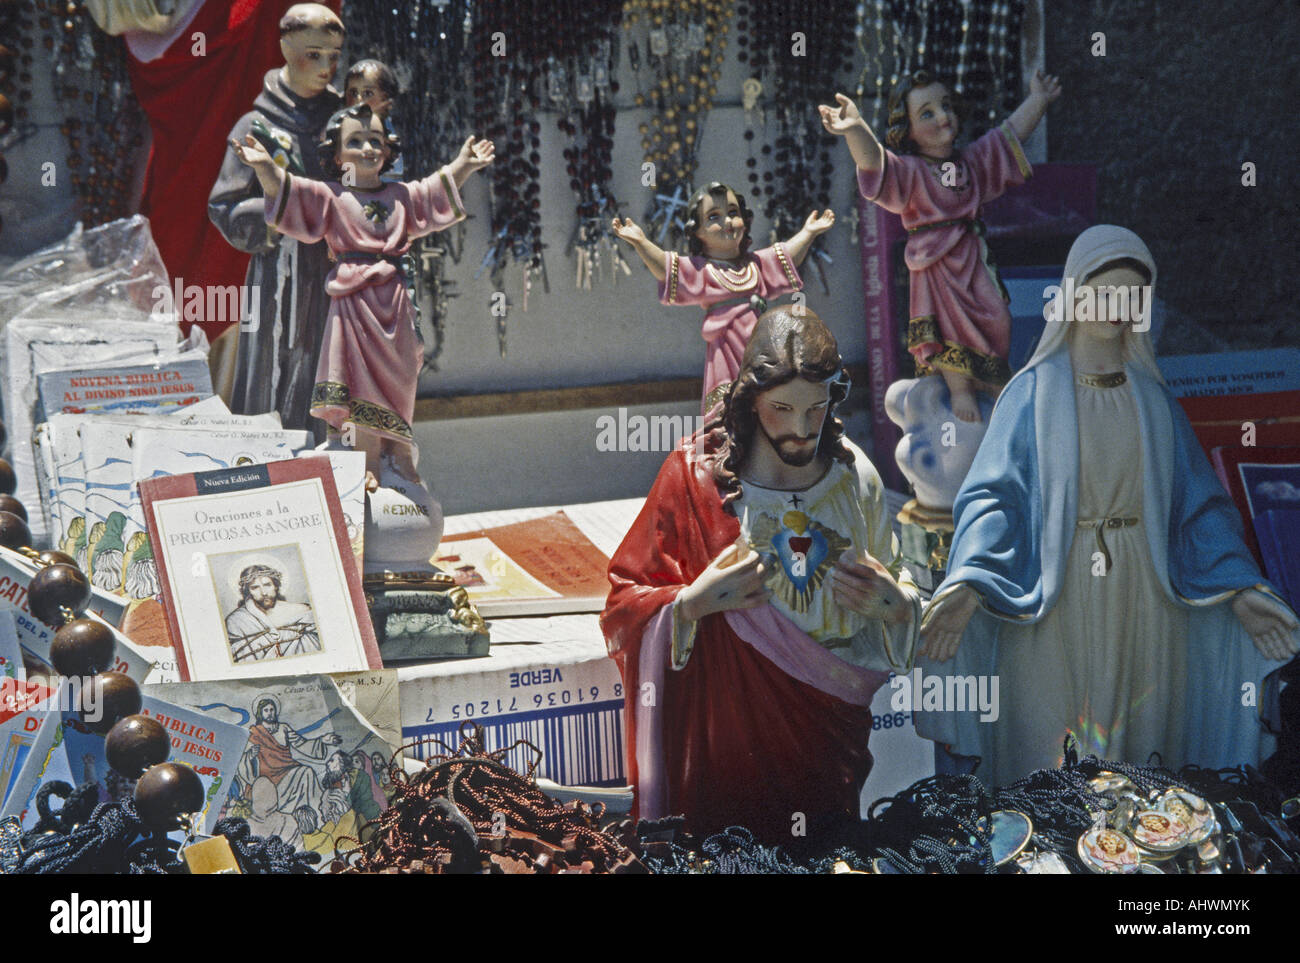 BOLIVIA shop selling Catholic devotional objects in the capital La Paz - Stock Image